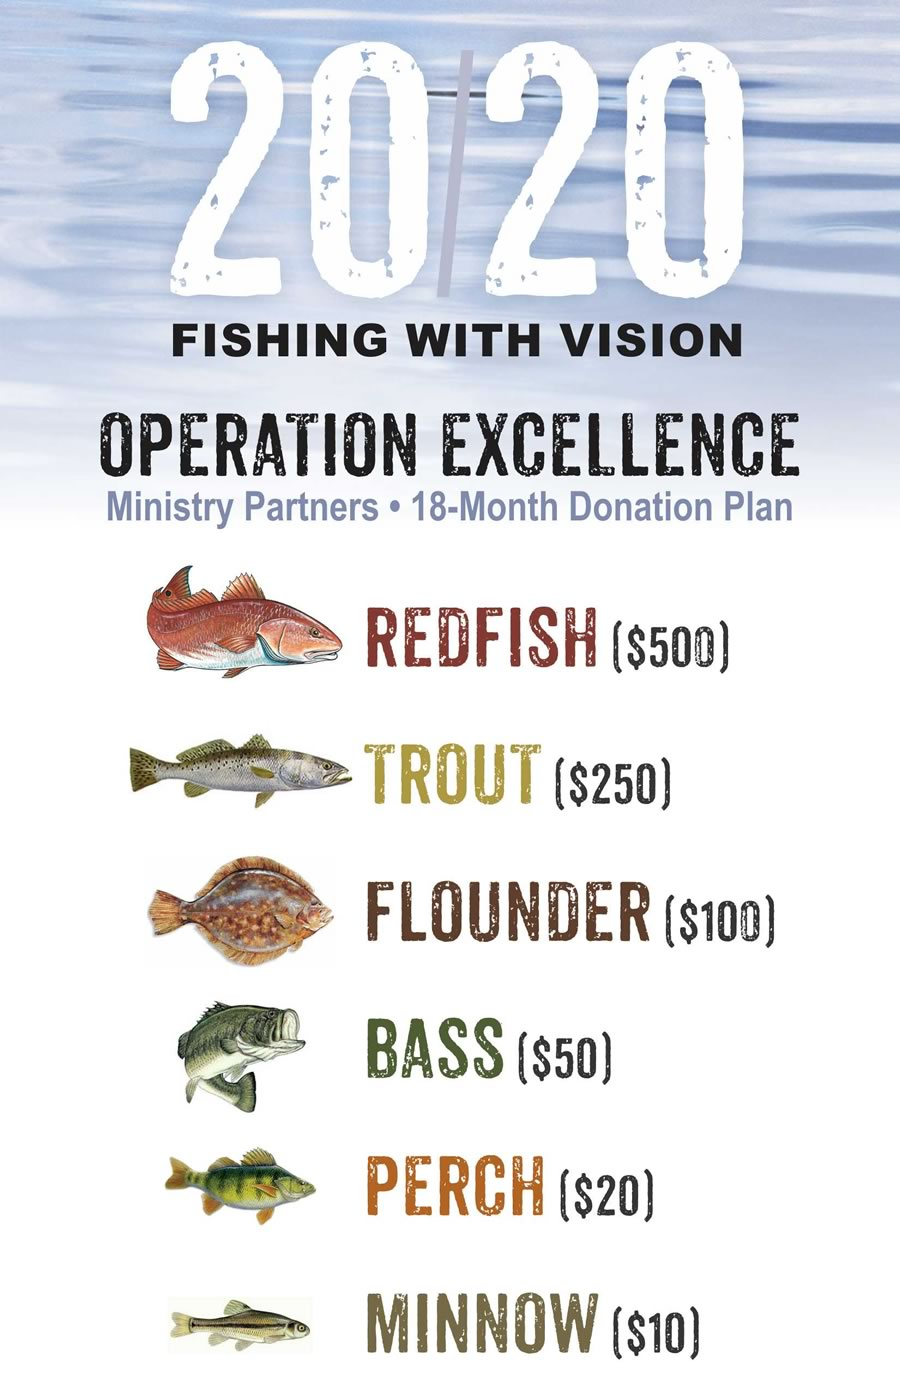 20/20 Operation Excellence